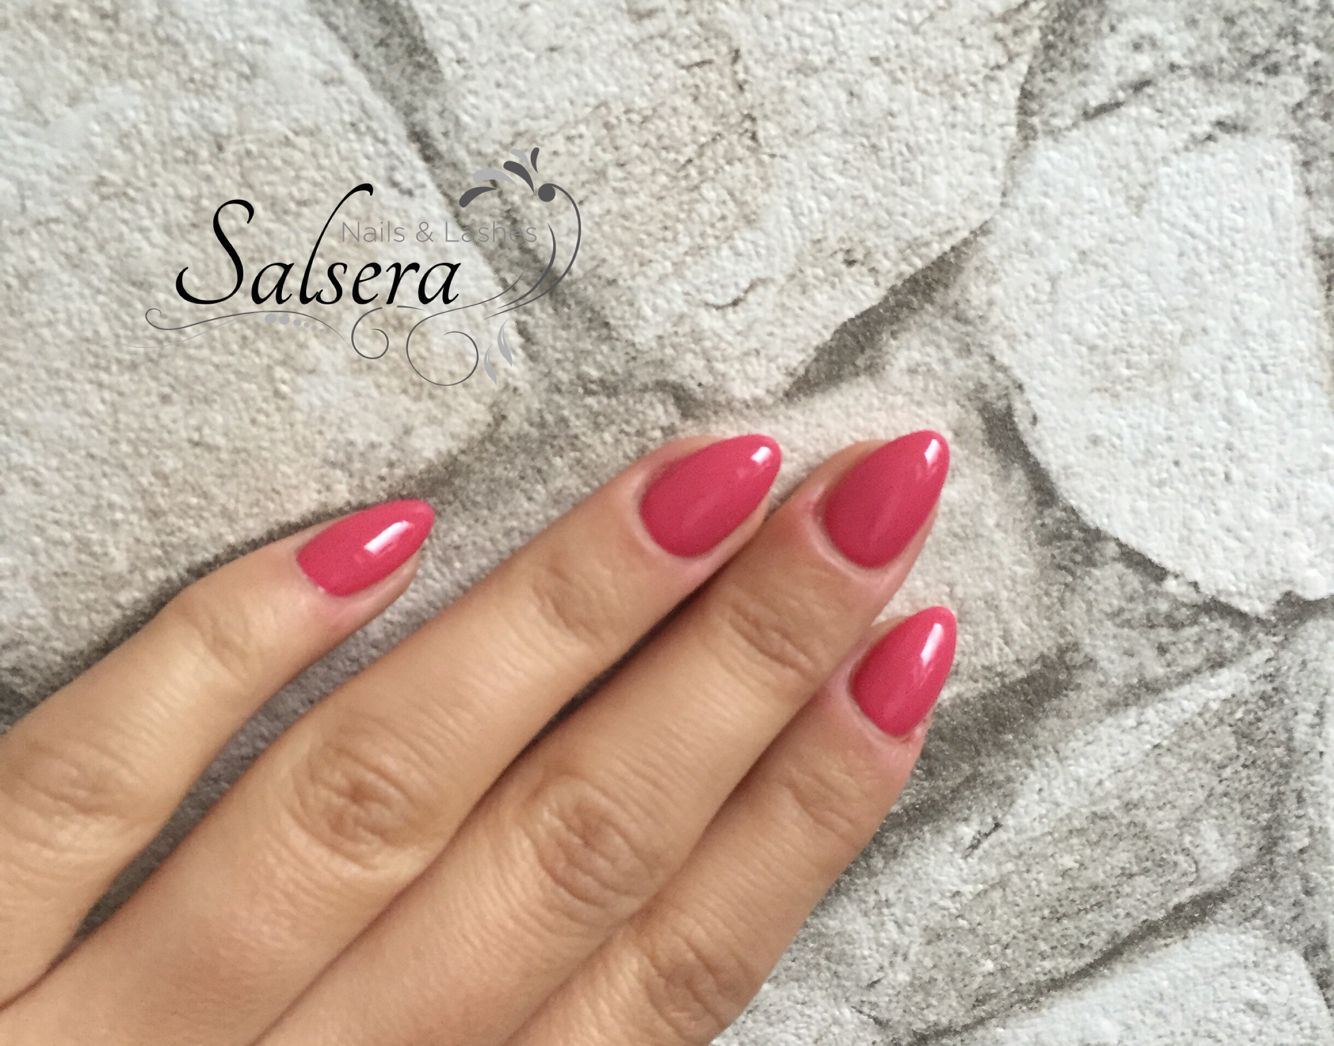 nails n gel fullcover naildesign mandeln pink beauty salsera nails lashes frankfurt. Black Bedroom Furniture Sets. Home Design Ideas